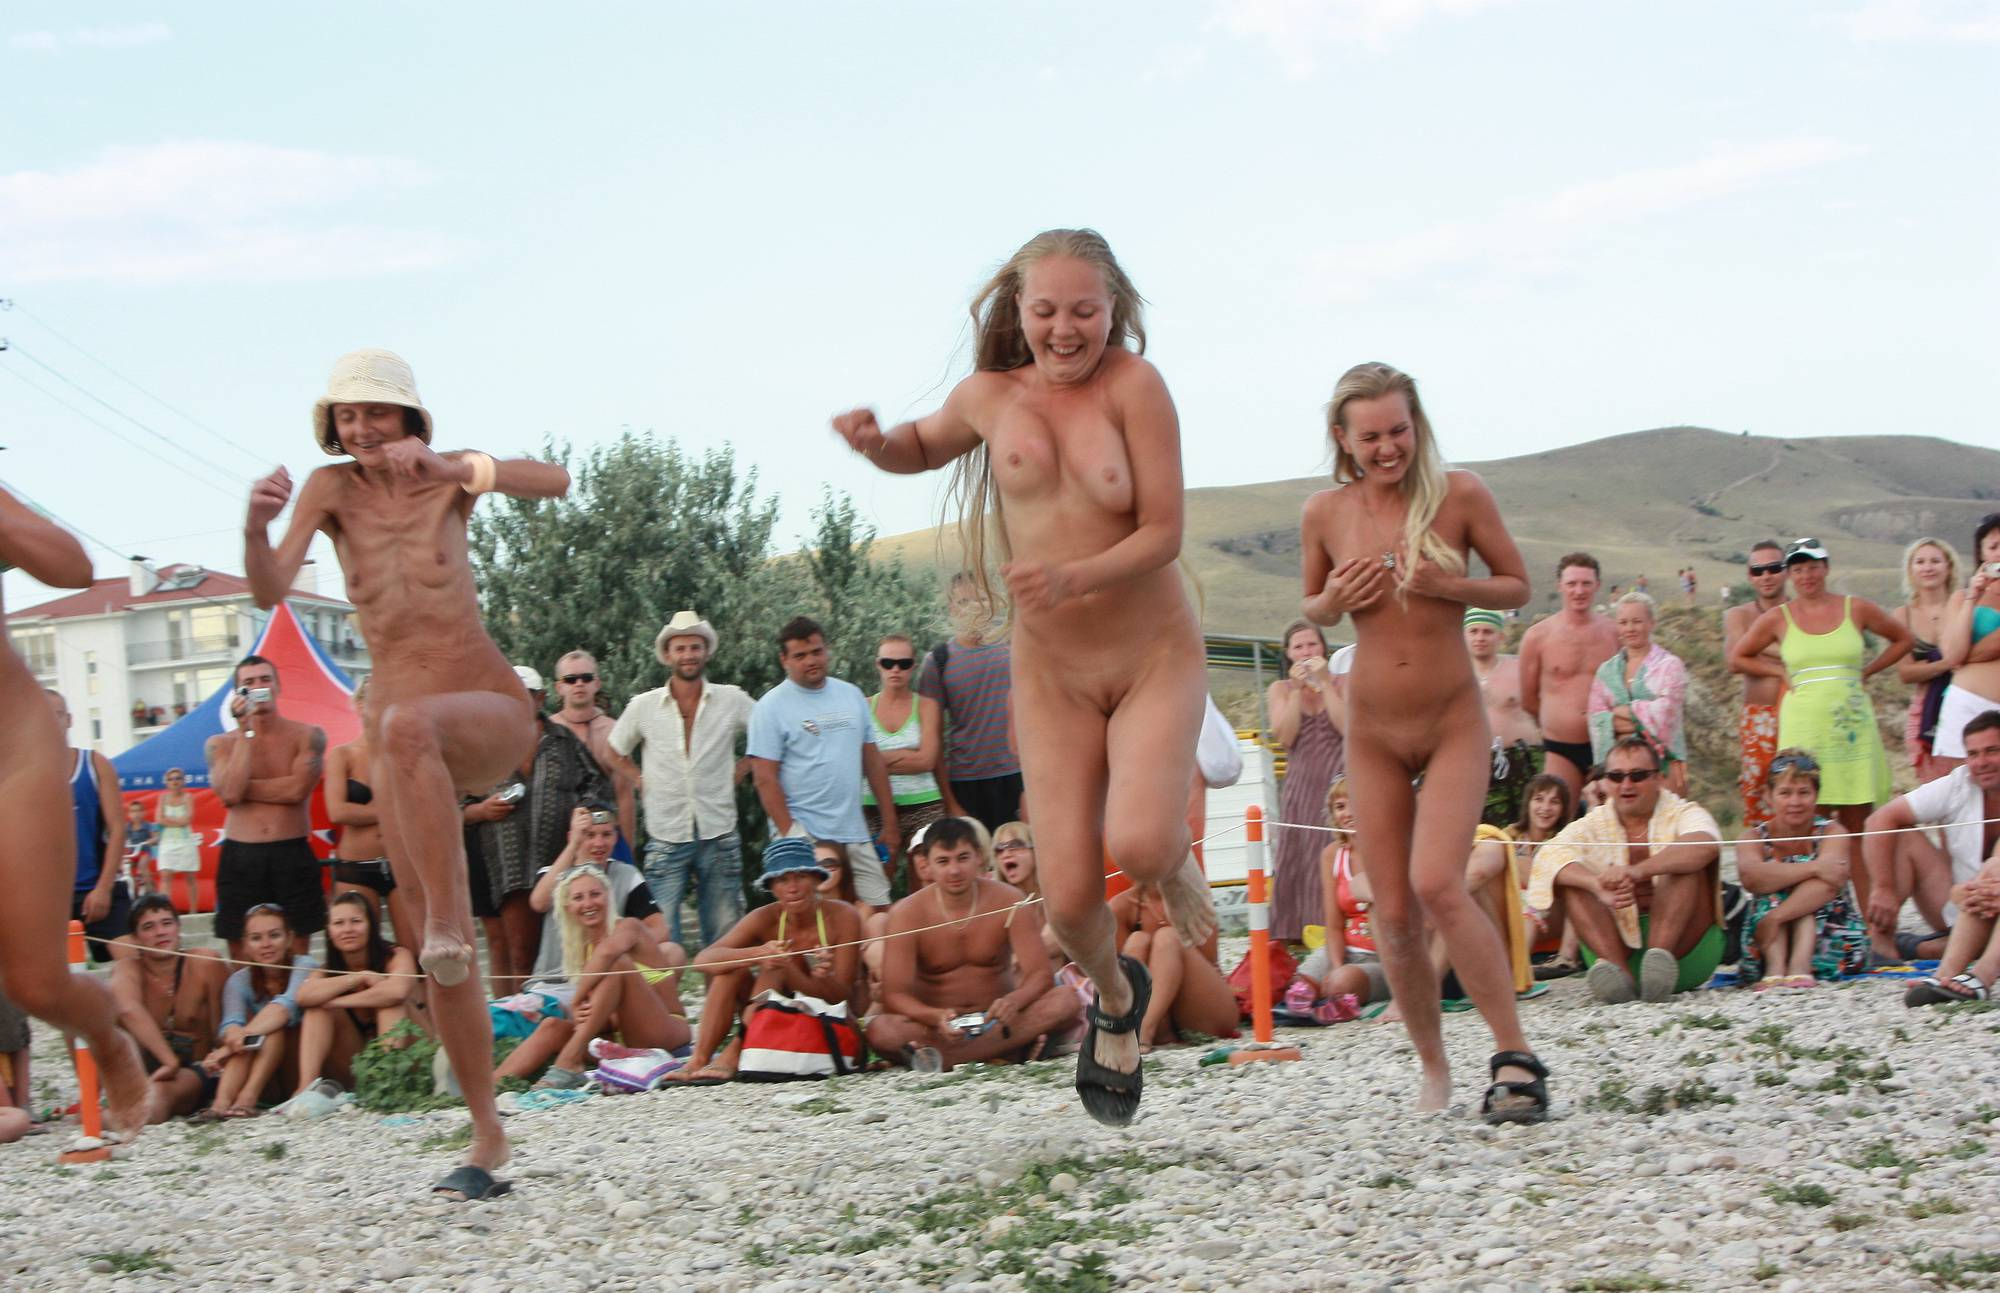 Nudist Pictures Neptune Race and Dance - 1